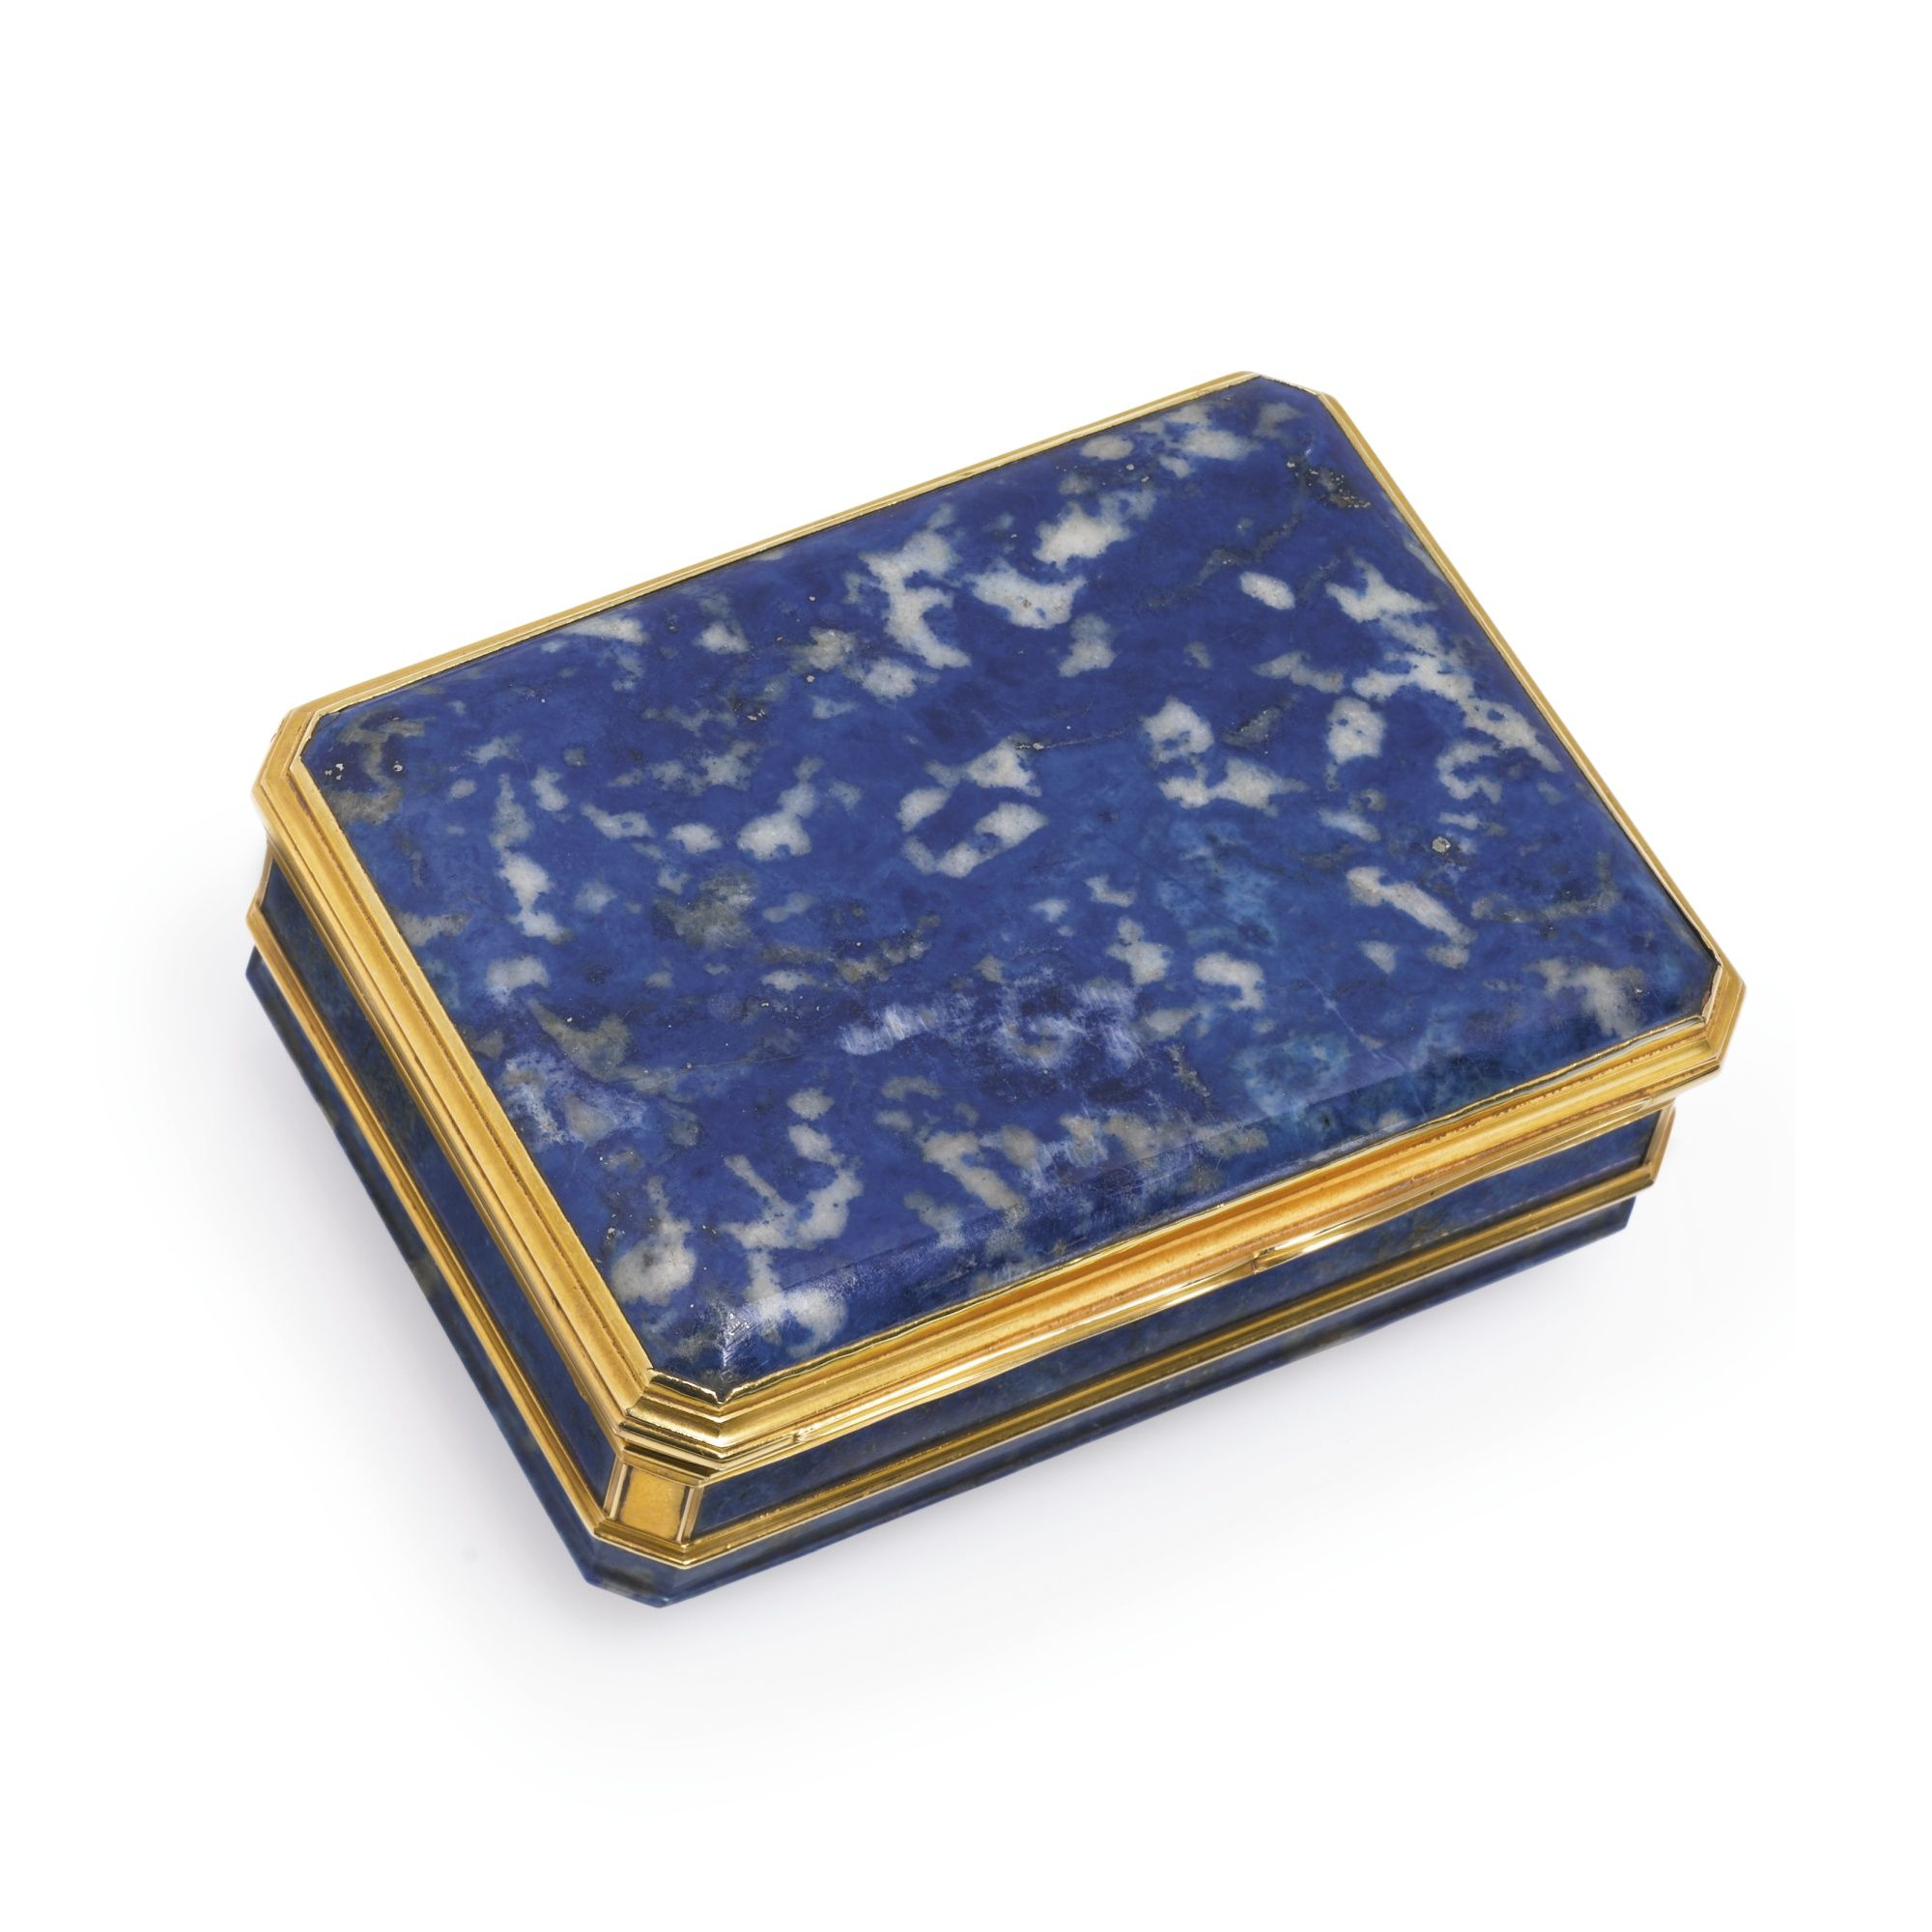 A Louis XV gold-mounted lapis lazuli snuff box, maker's mark L?, Paris, 1733   3-1/2 inches